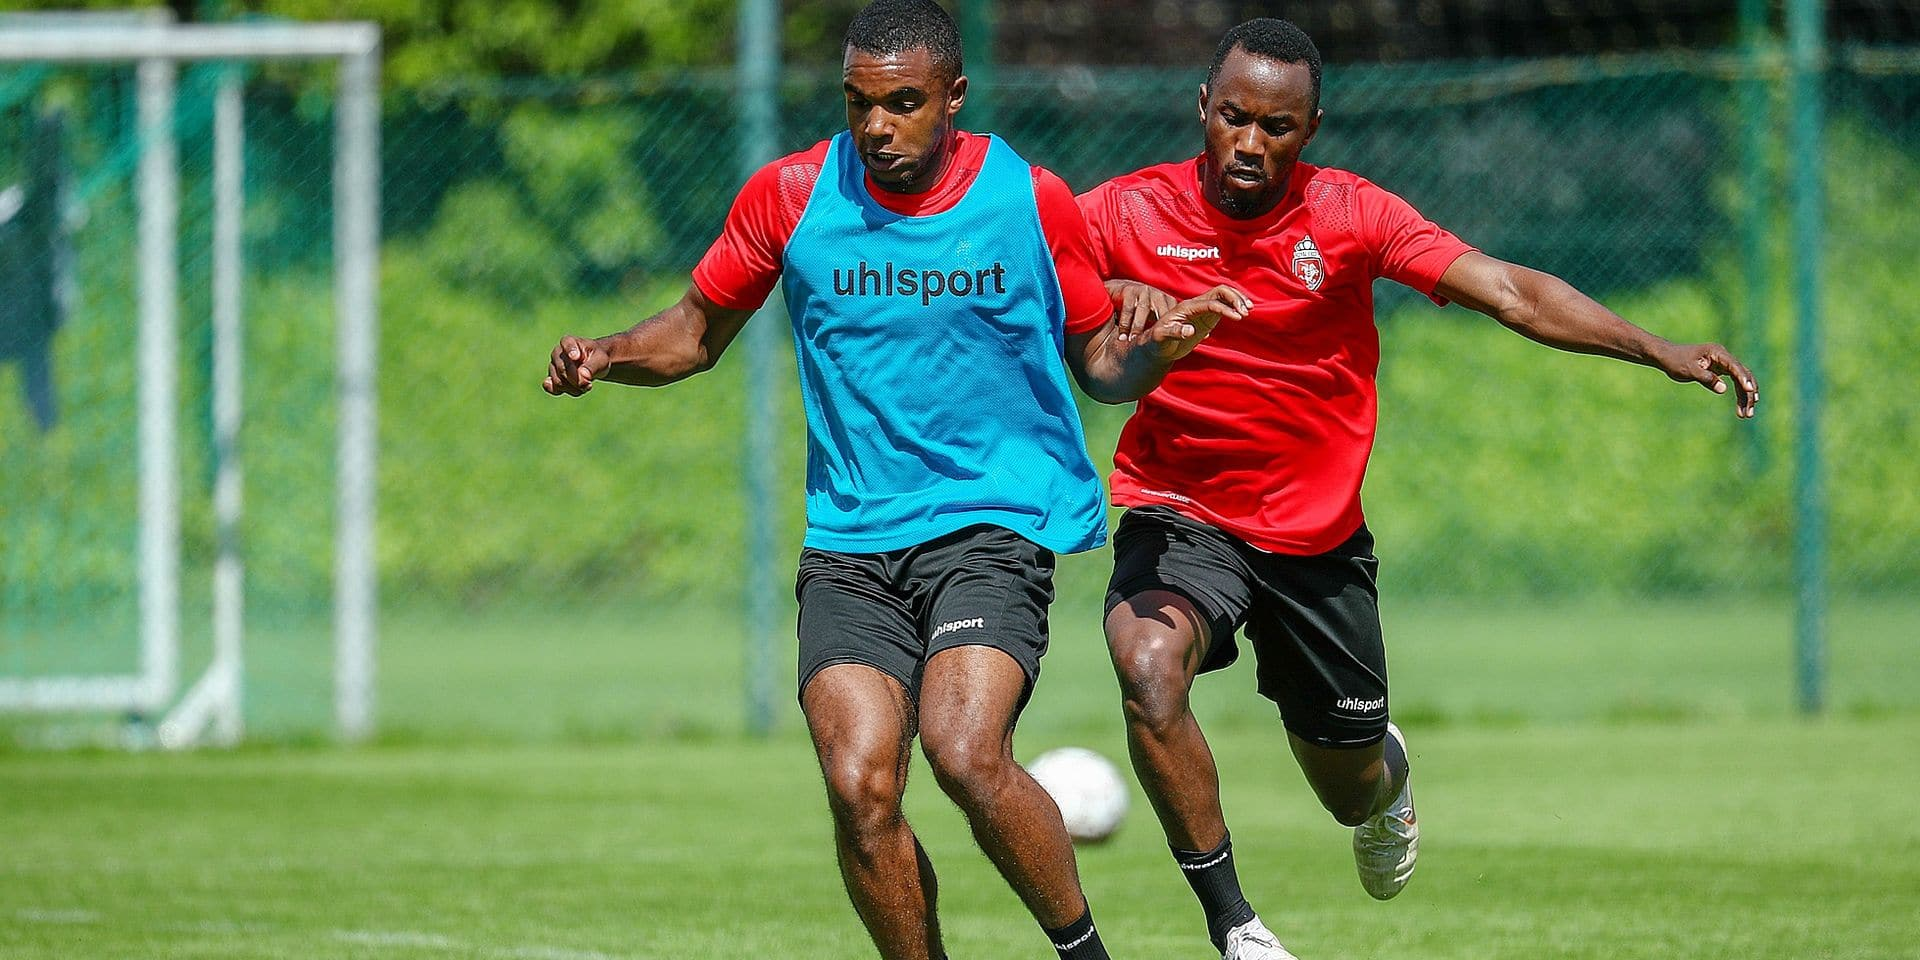 Mouscron's Nathan De Medina and Mouscron's Fabrice Olinga fight for the ball during a training session of Belgian soccer team Royal Excel Mouscron, Friday 21 June 2019 in Mouscron, in preparation of the upcoming 2019-2020 Jupiler Pro League season. BELGA PHOTO VIRGINIE LEFOUR